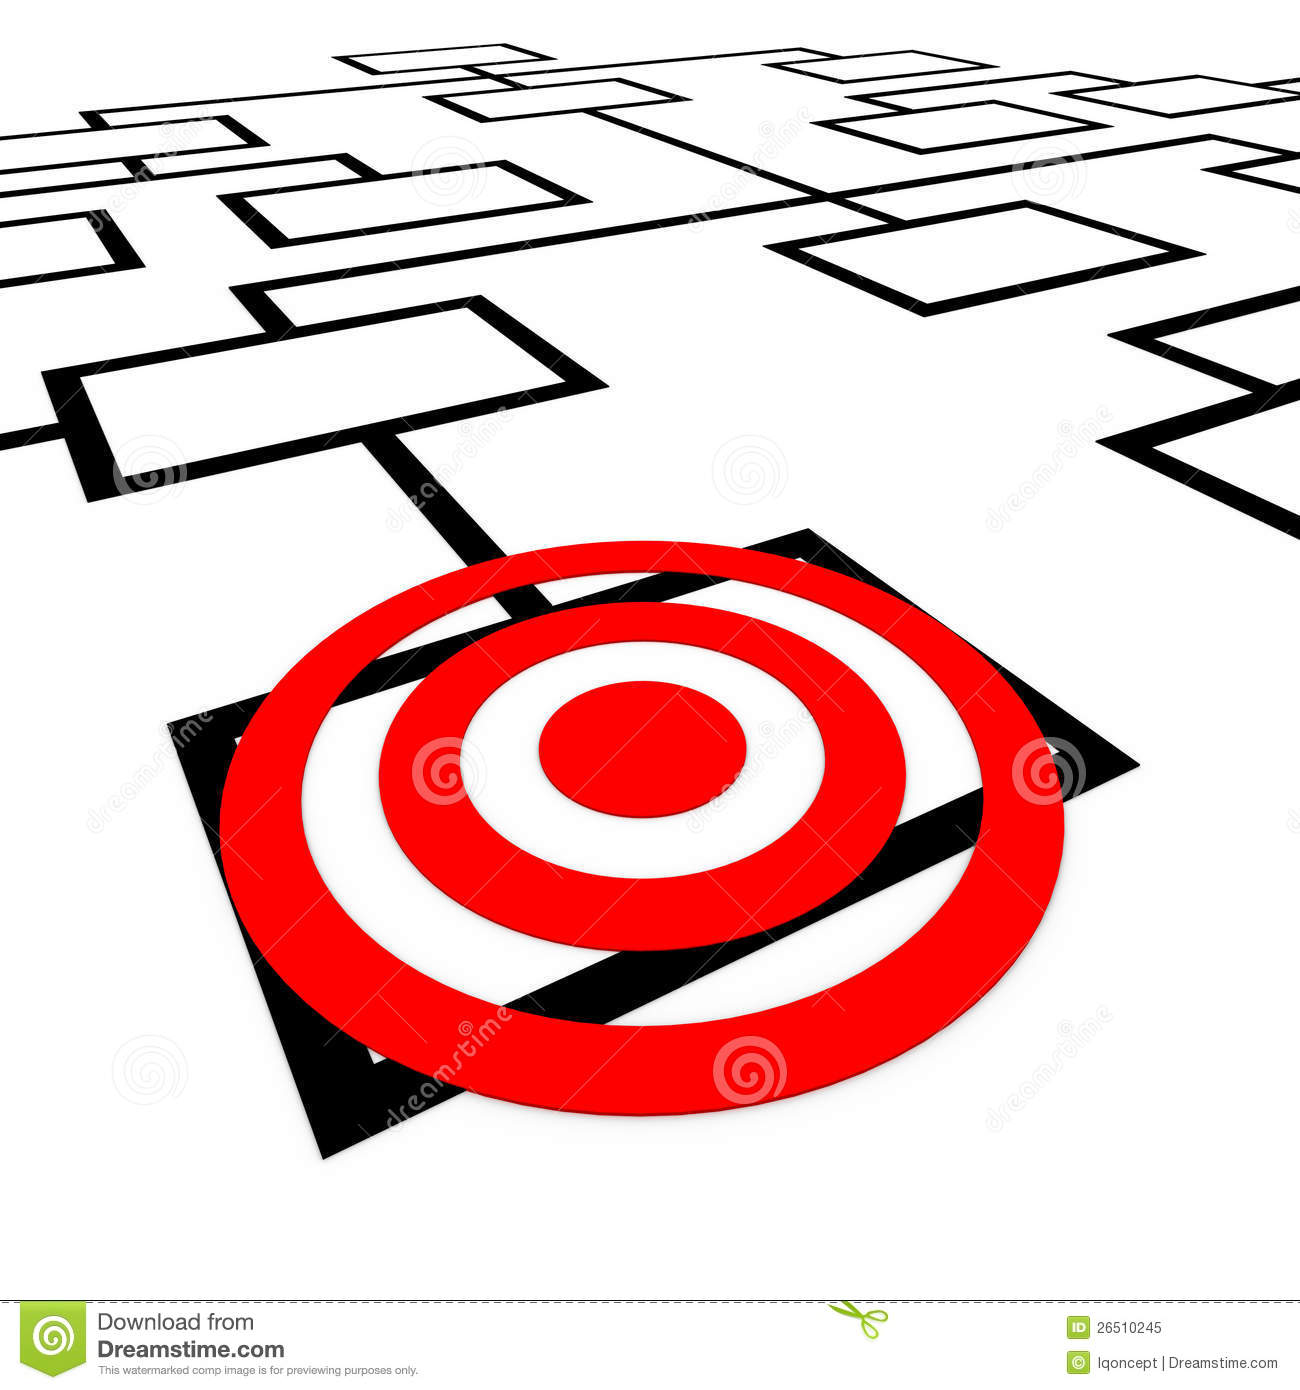 Targeted position organization org chart bulls eye stock for Bullseye chart template